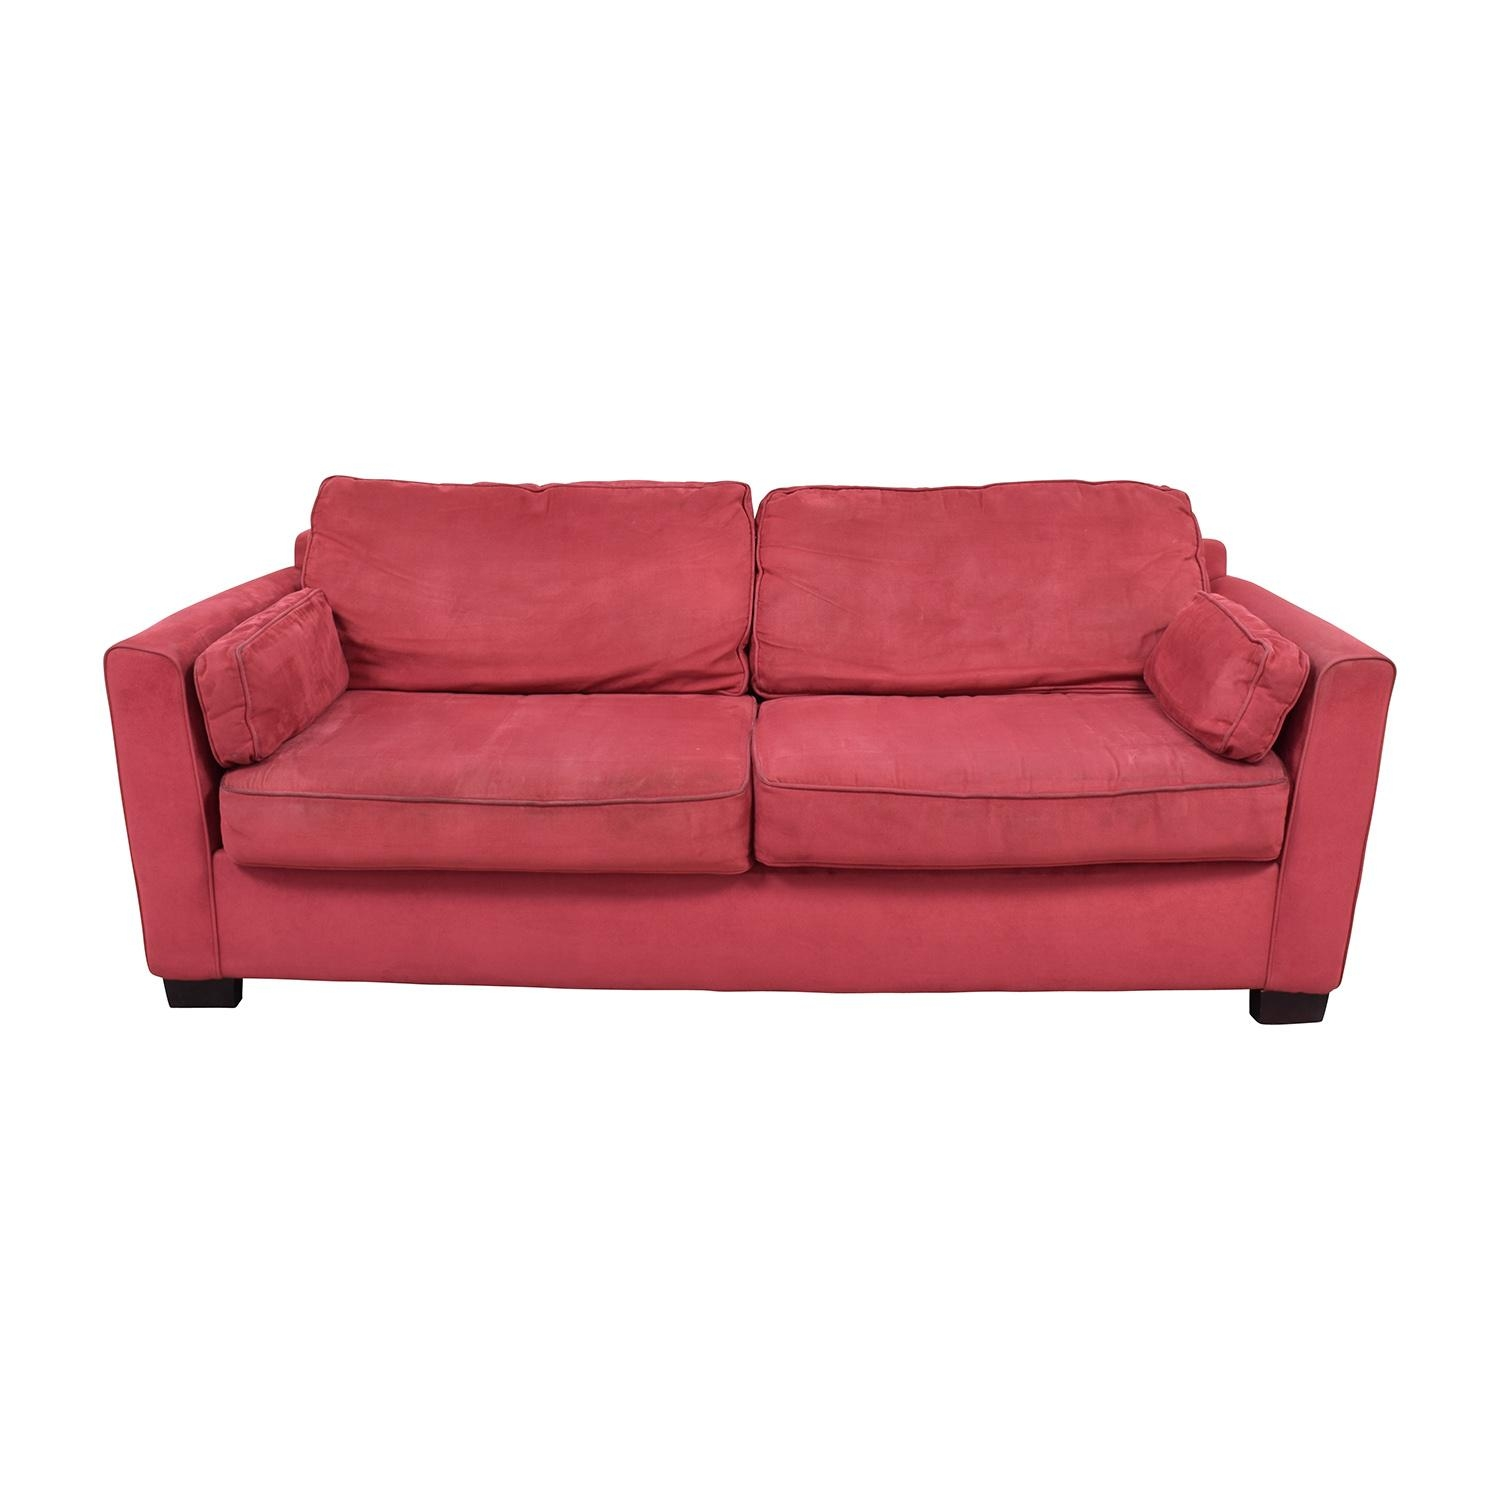 88% Off - Bloomingdales Bloomingdale's Classic Low Profile Red in Bloomingdales Sofas